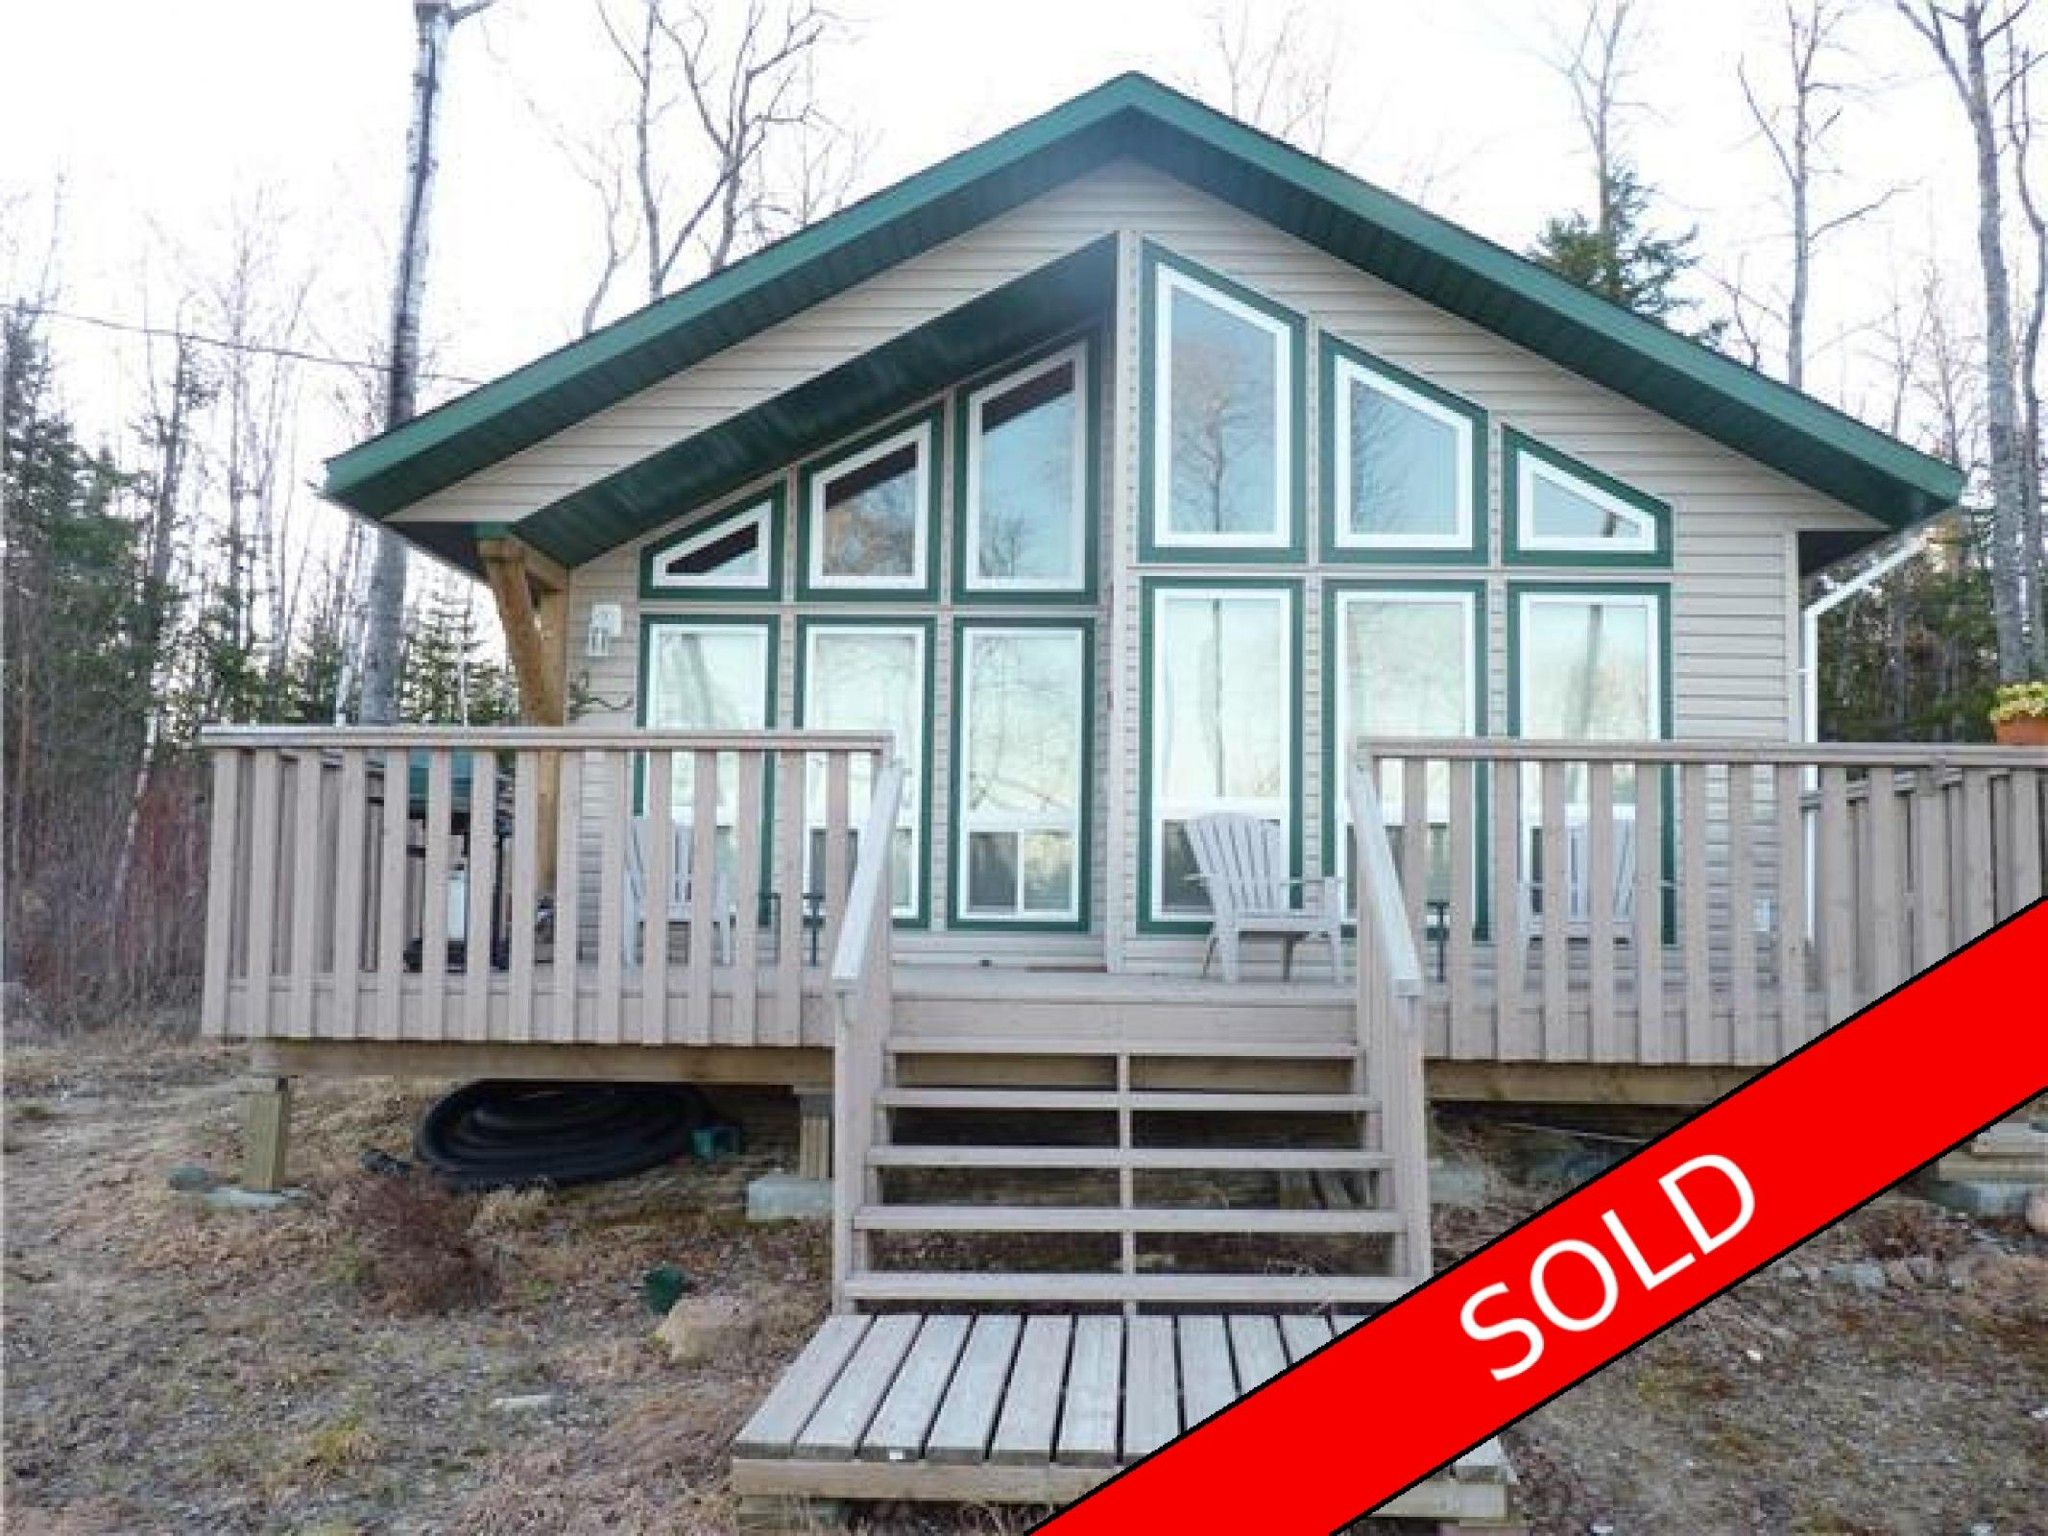 Main Photo: 108 Pelican Harbour Road in Manigotagan, MB R0E1E0: House for sale : MLS®# 1610717